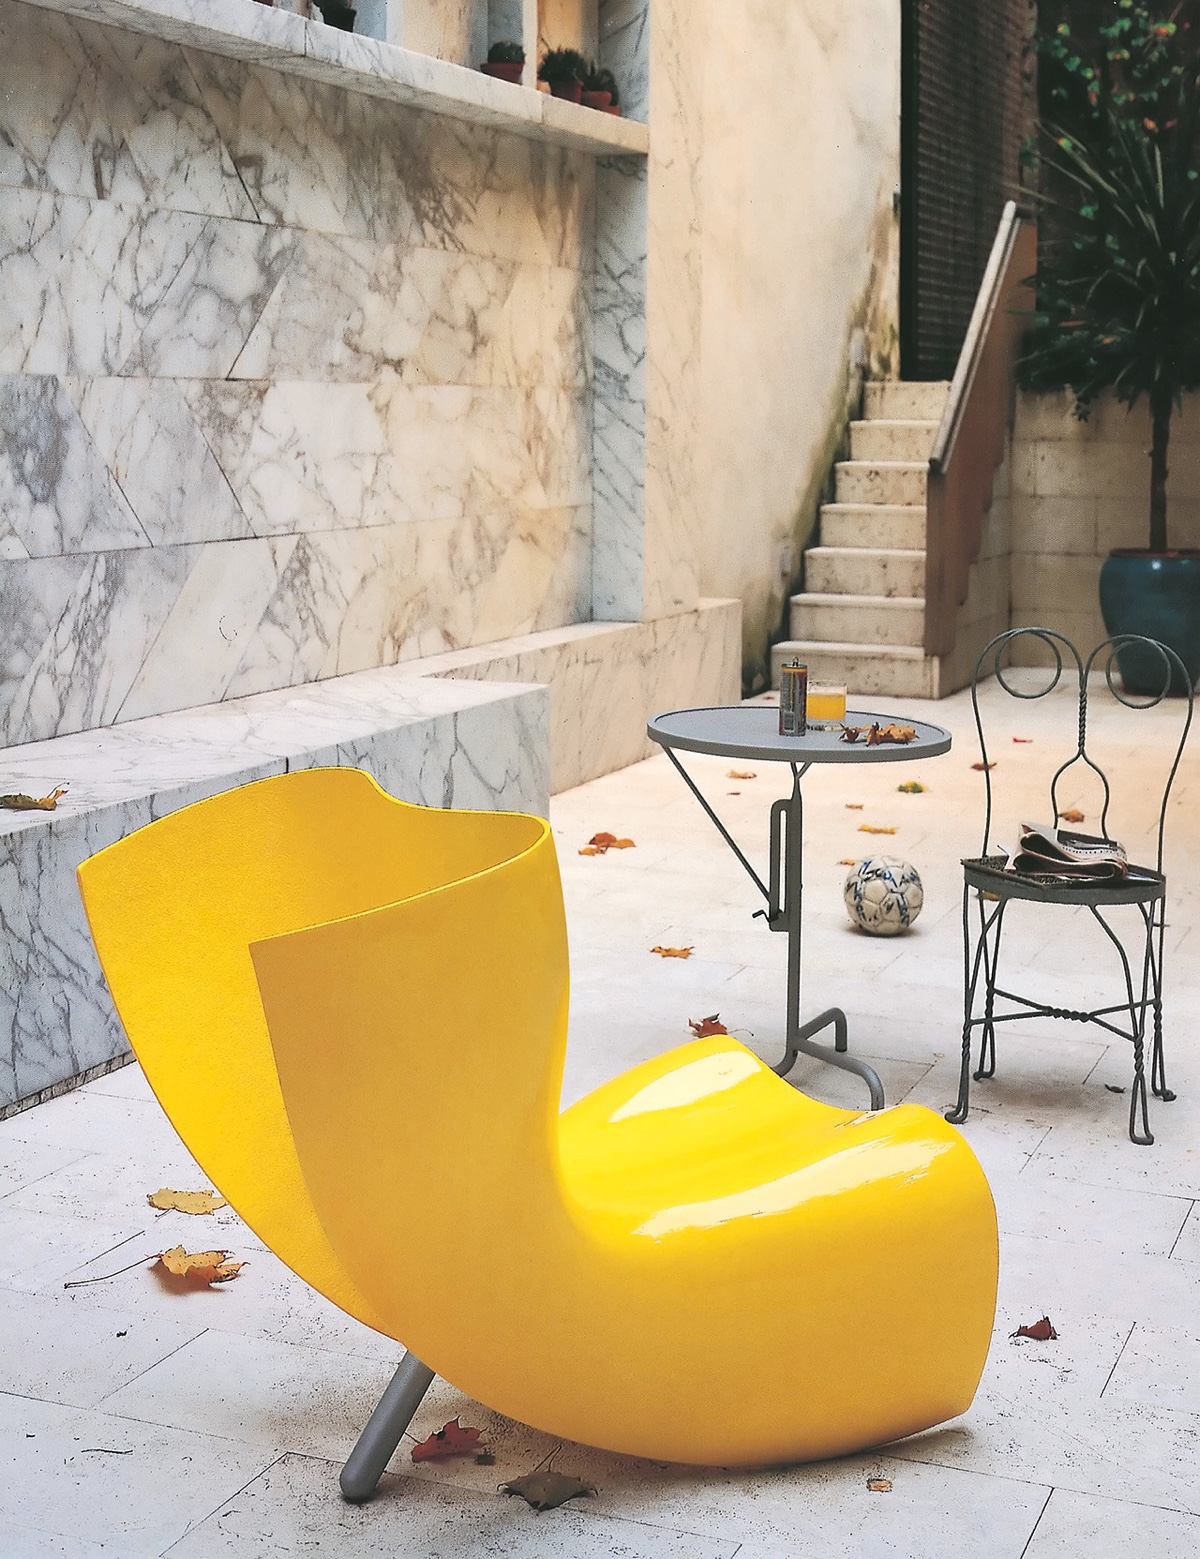 Felt chair by Marc Newson. Images courtesy of Cappellini.